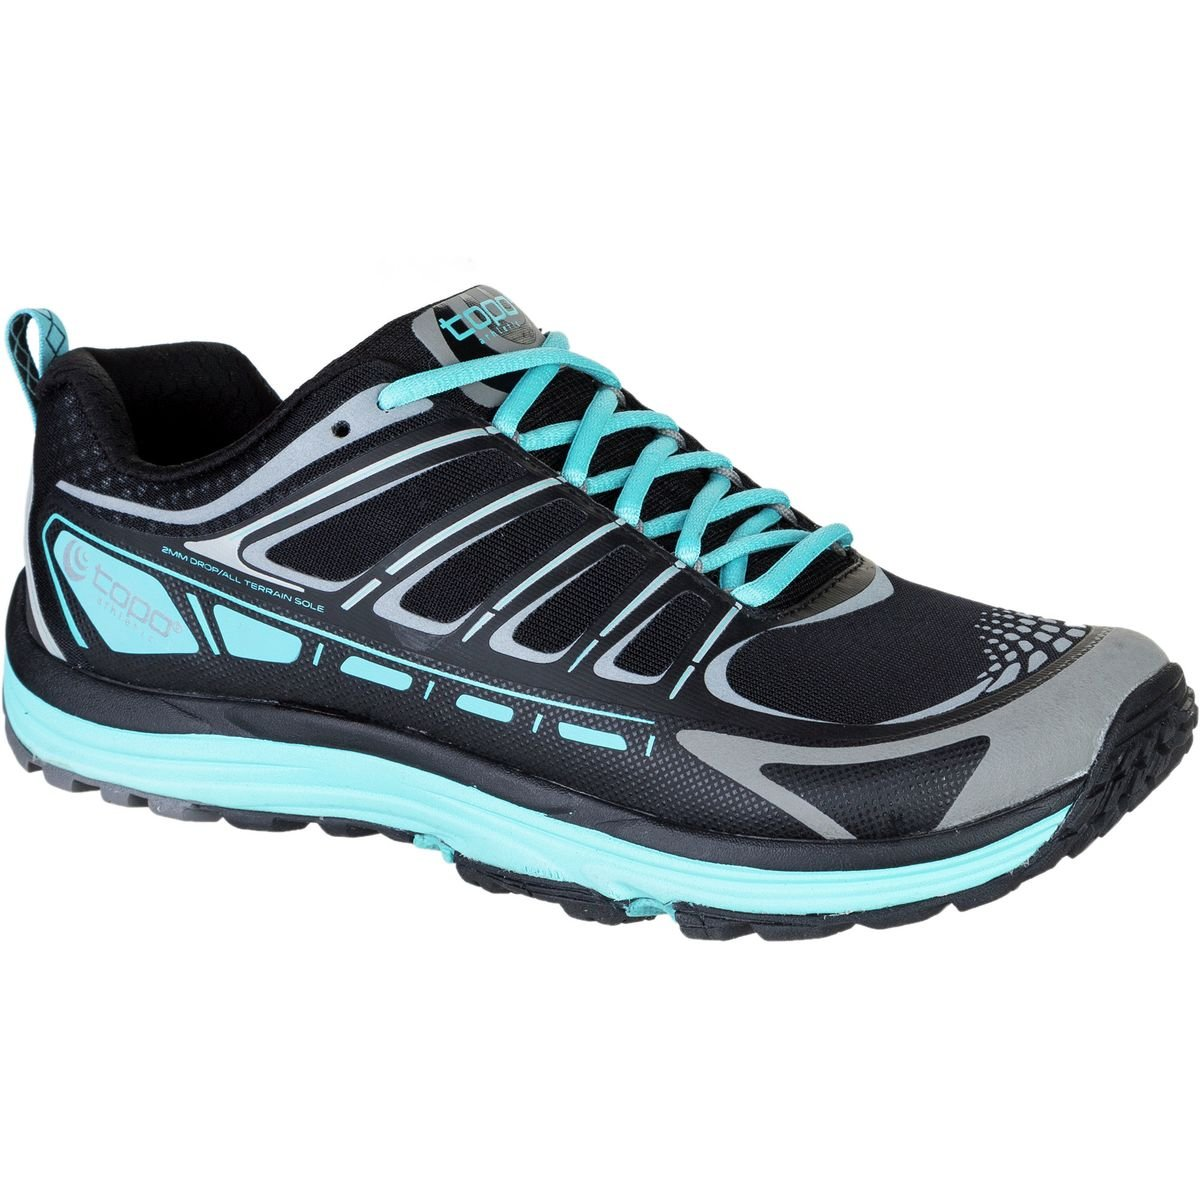 Topo Athletic Hydroventure Trail Running Shoe - Women's Black/Turquoise 7